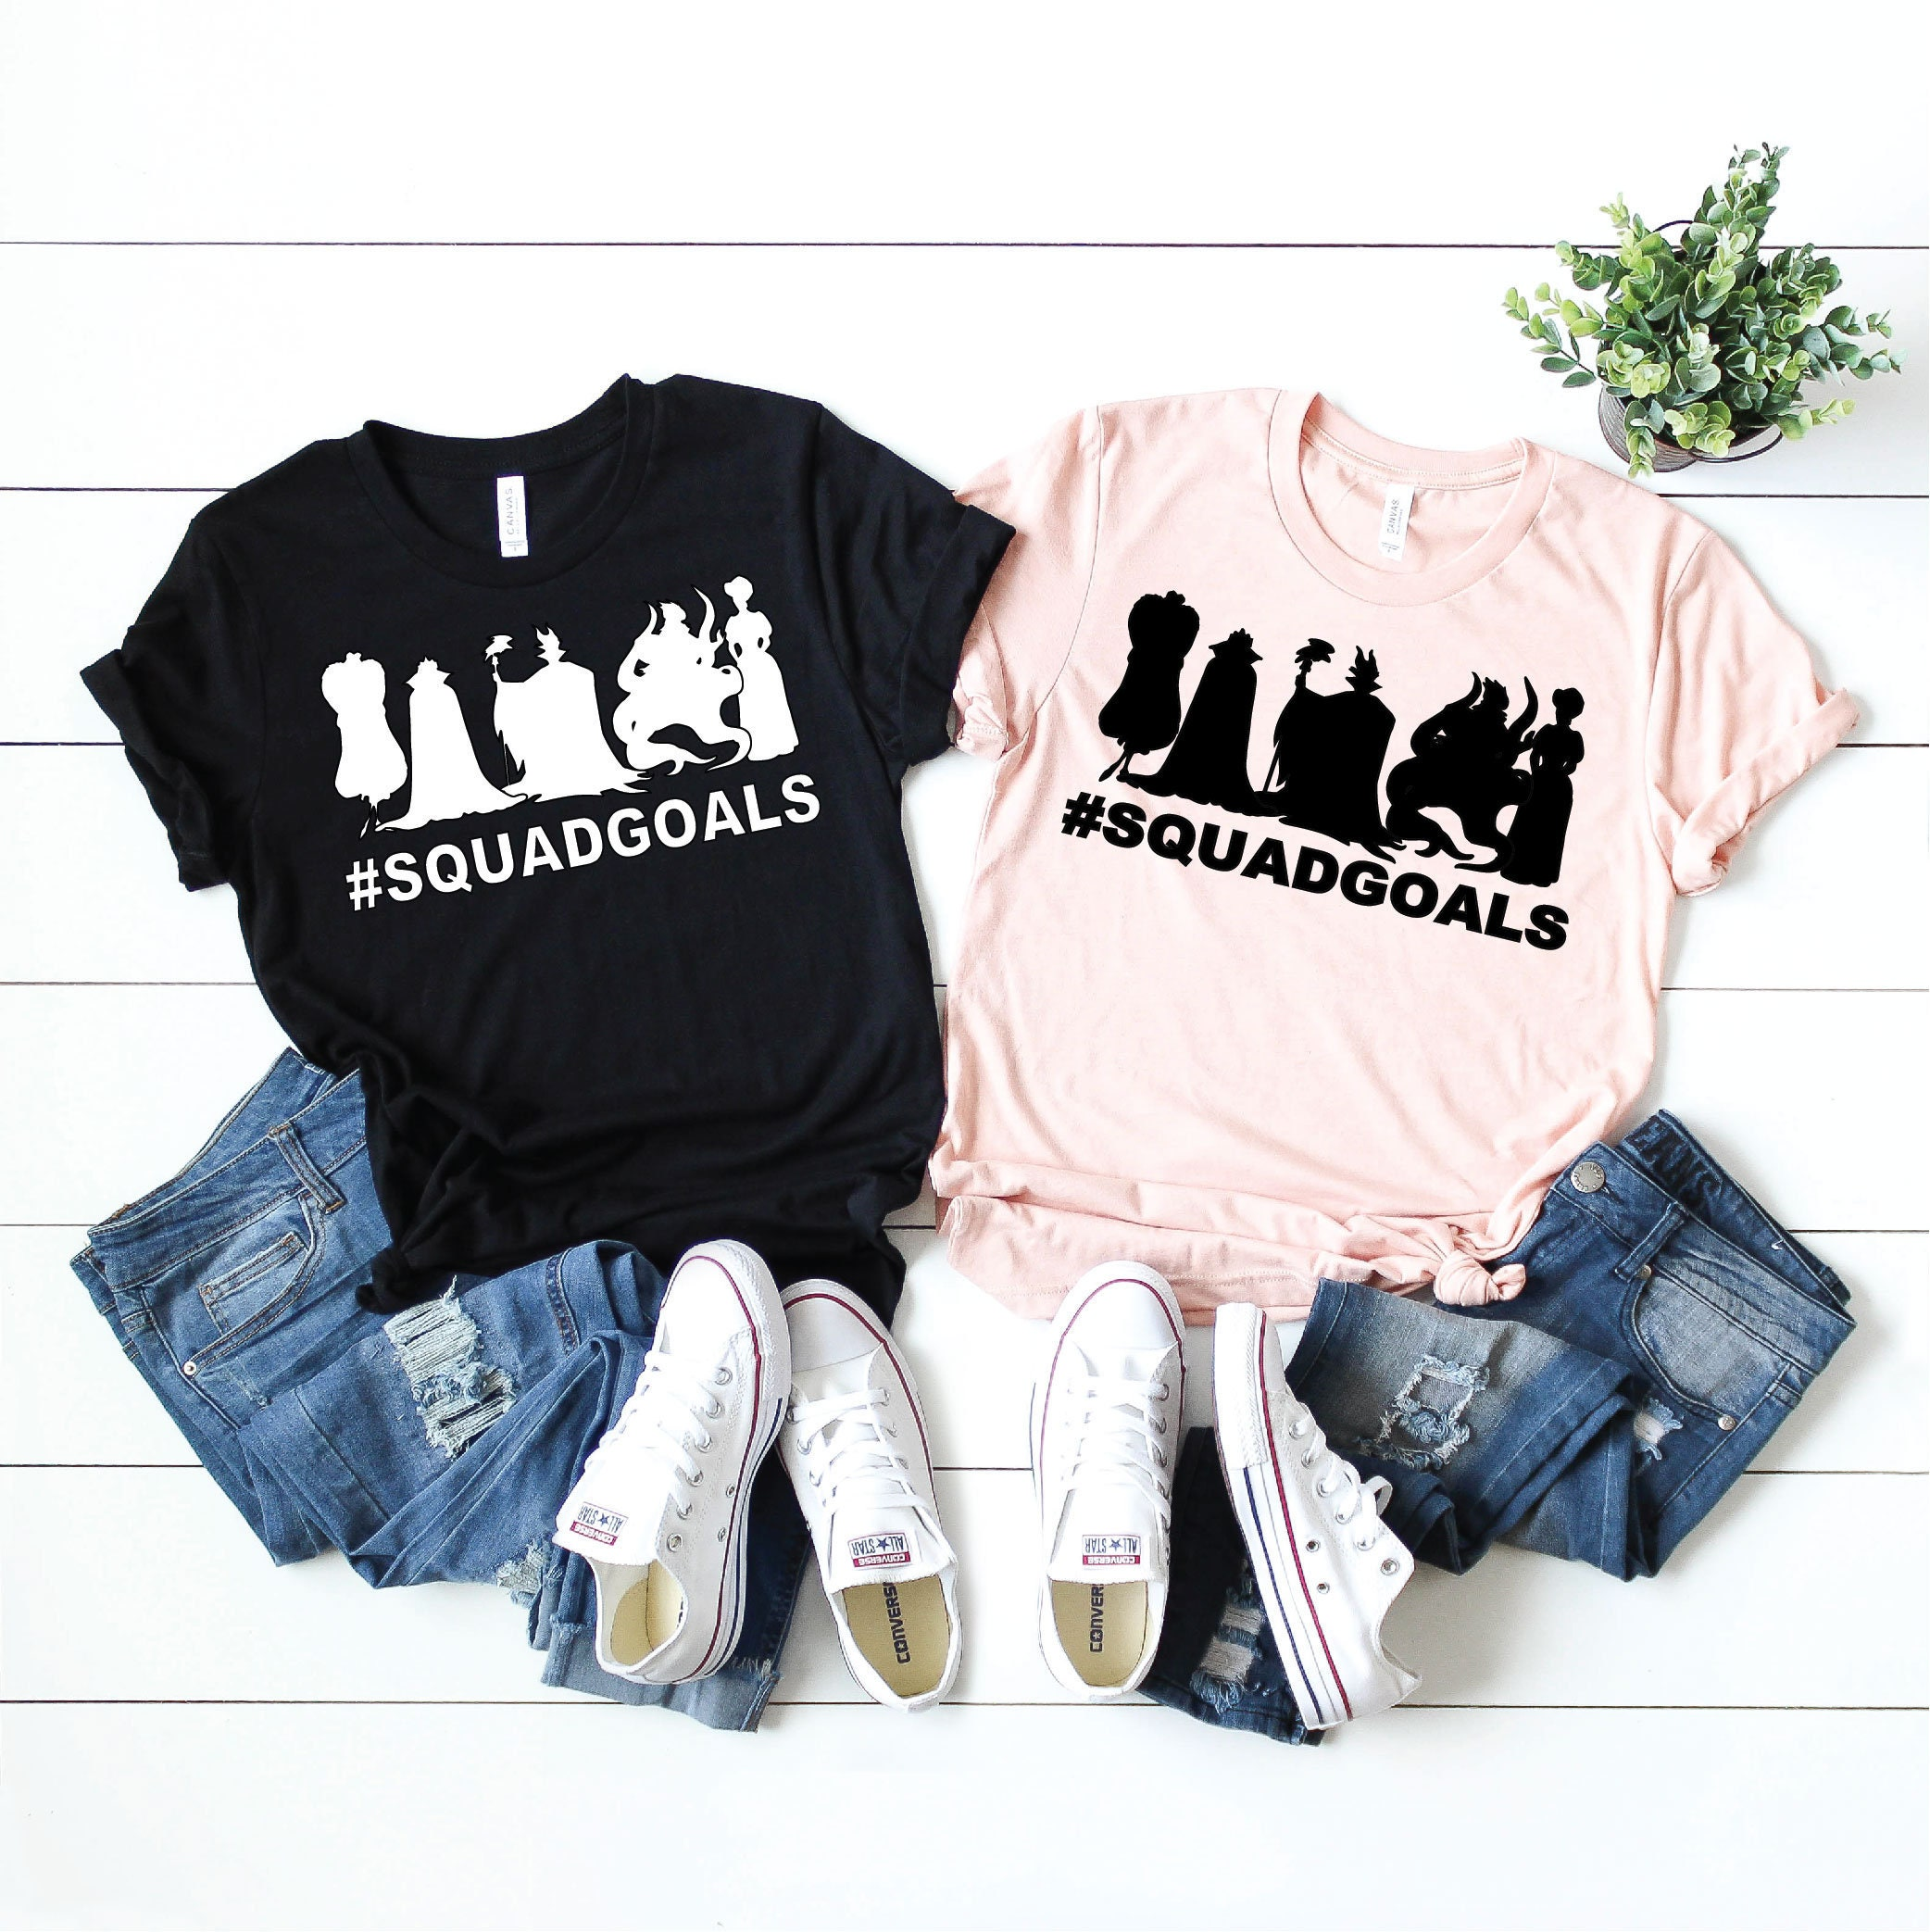 eeae6ccbe036 Villains Squad Goals- Magical Vacation Tee - Adult and Youth sizes